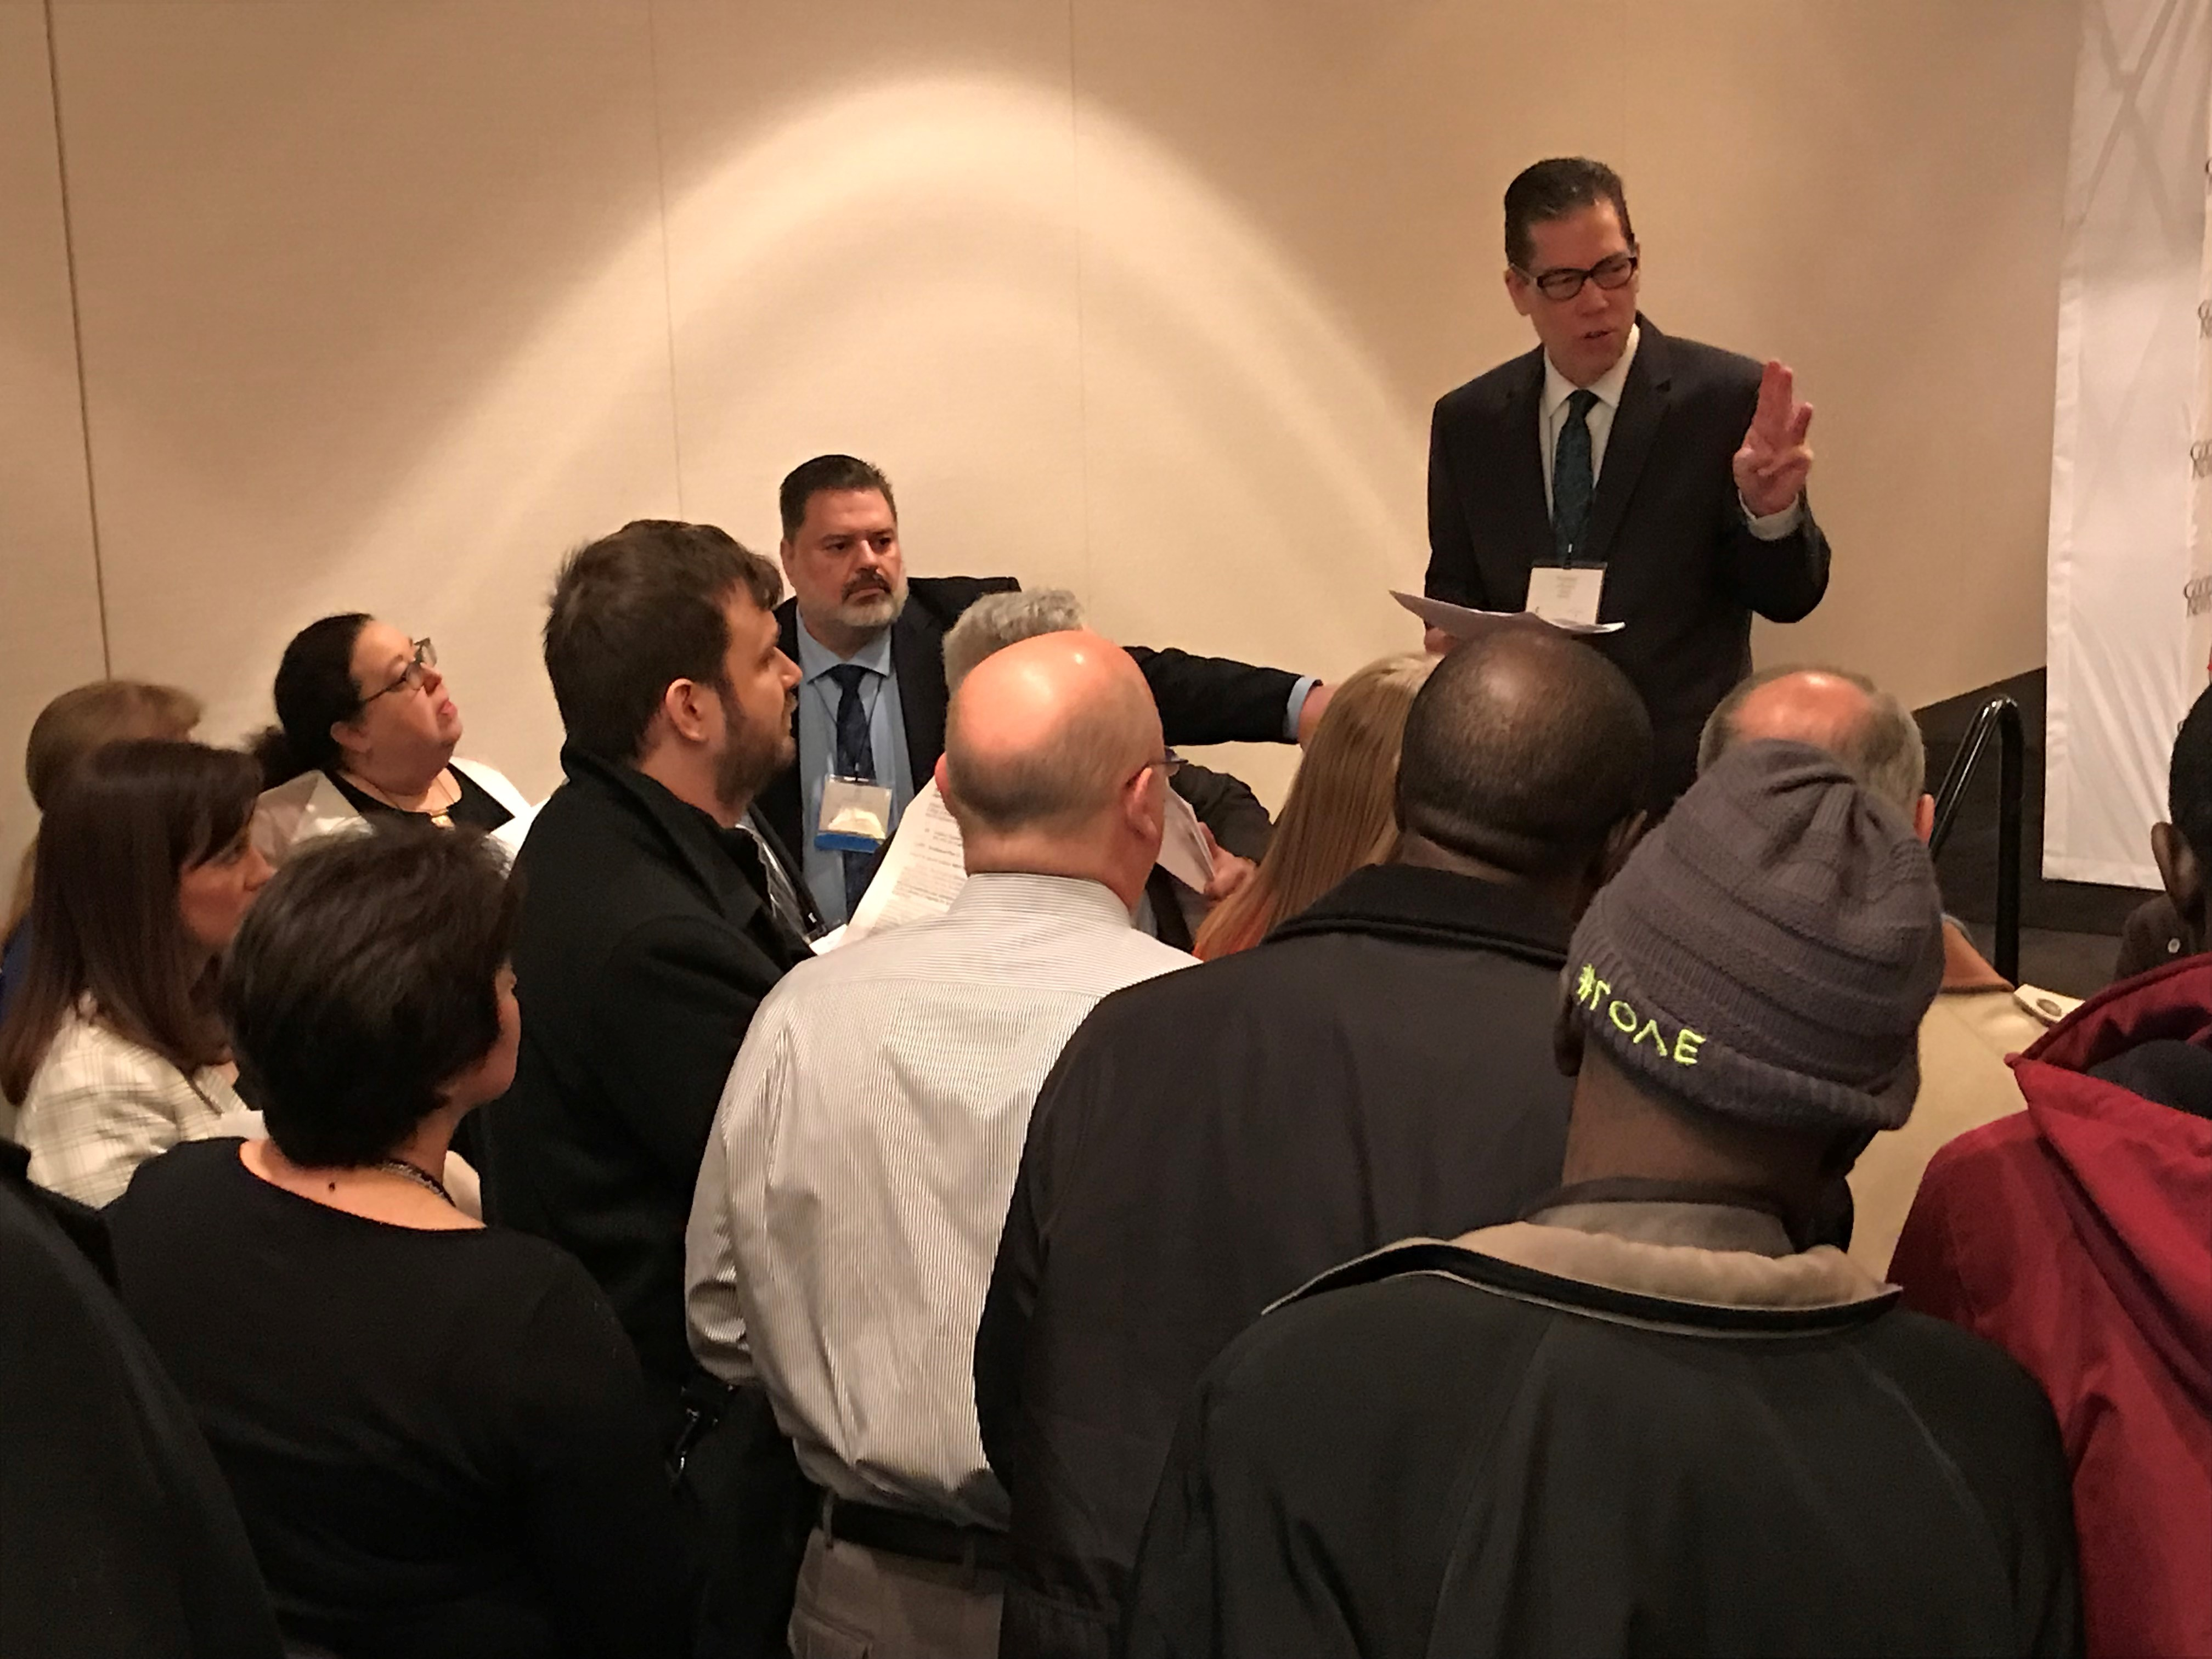 The Rev. Tom Lambrecht gives directions to General Conference 2019 delegates at the Feb. 25 breakfast briefing sponsored by Good News, the unofficial traditionalist advocacy group within The United Methodist Church. Photo by Sam Hodges, UMNS.